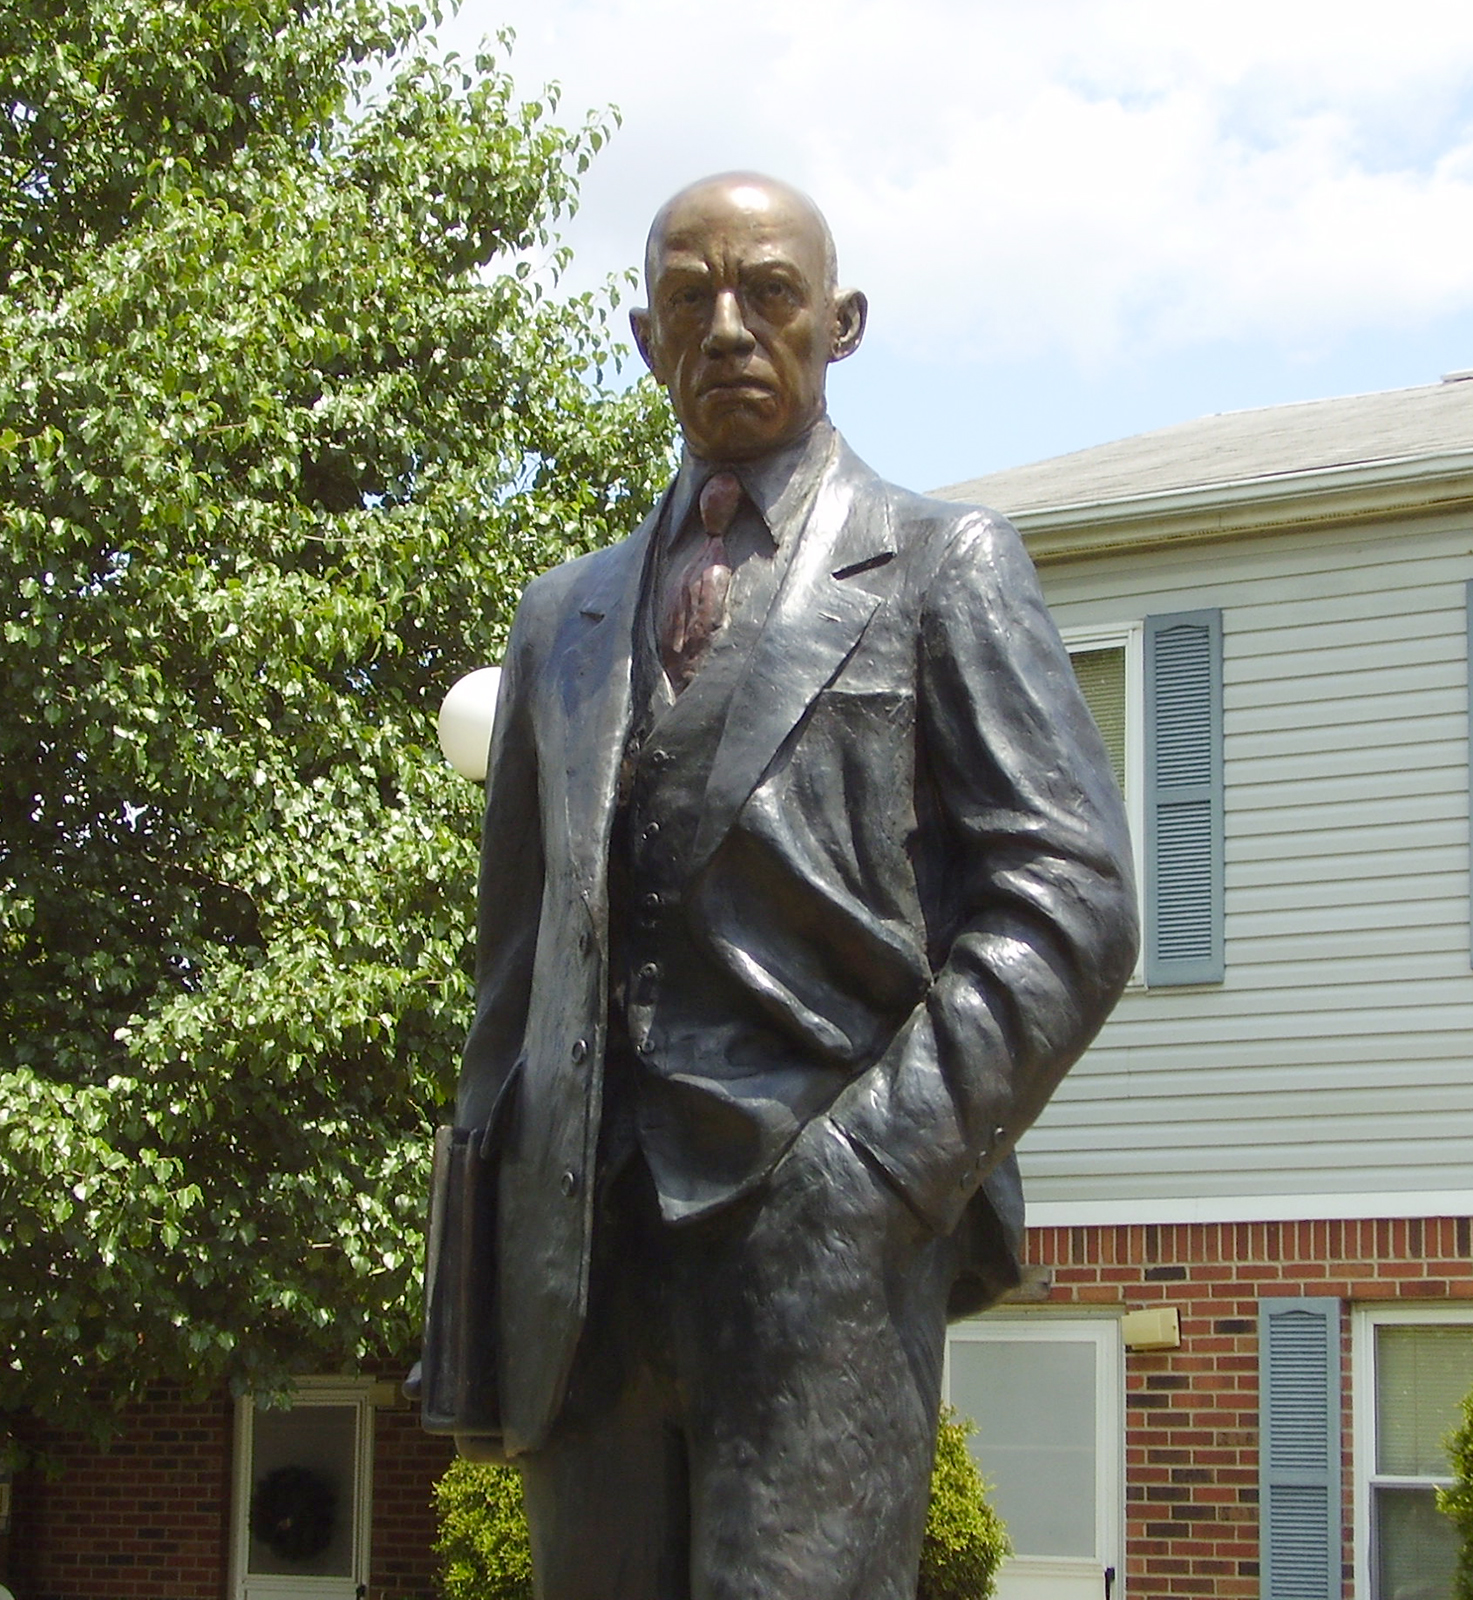 Statue of Woodson, the man behind the Black History Month holiday, in Huntington, West Verginia